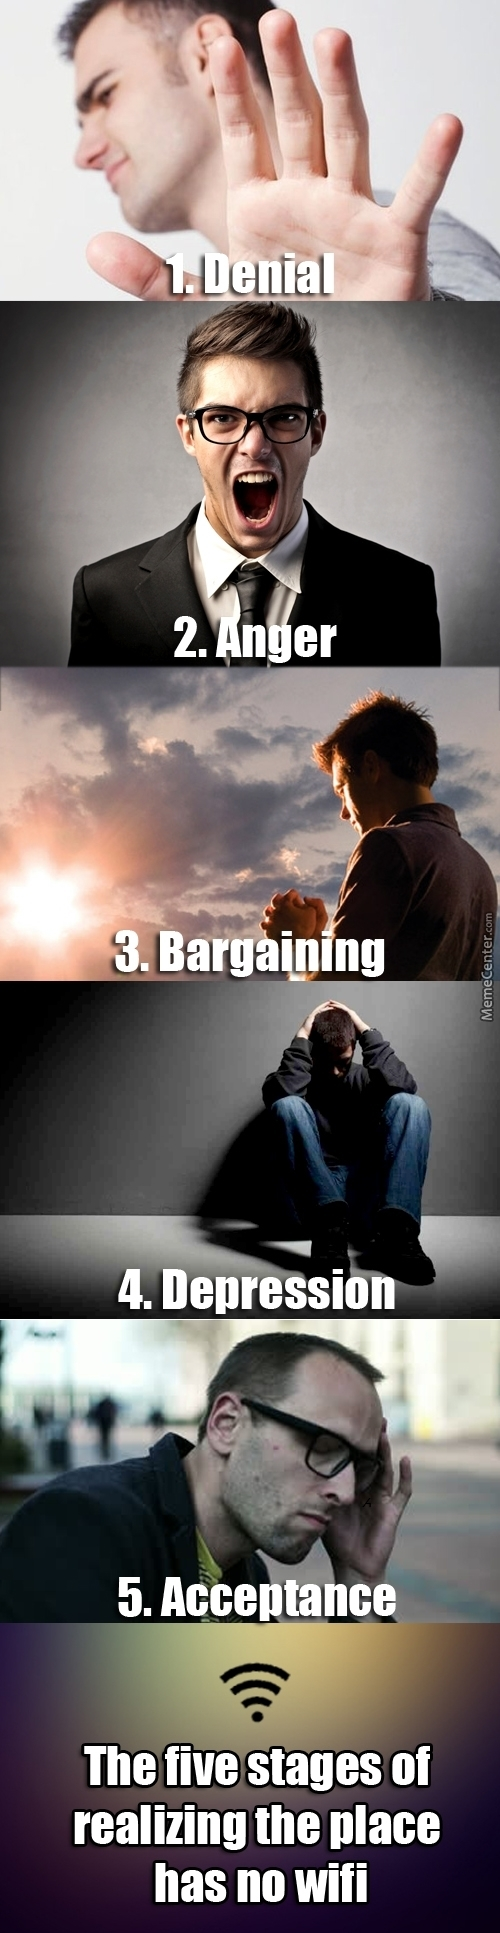 the-5-stages-of-grief_o_3024063